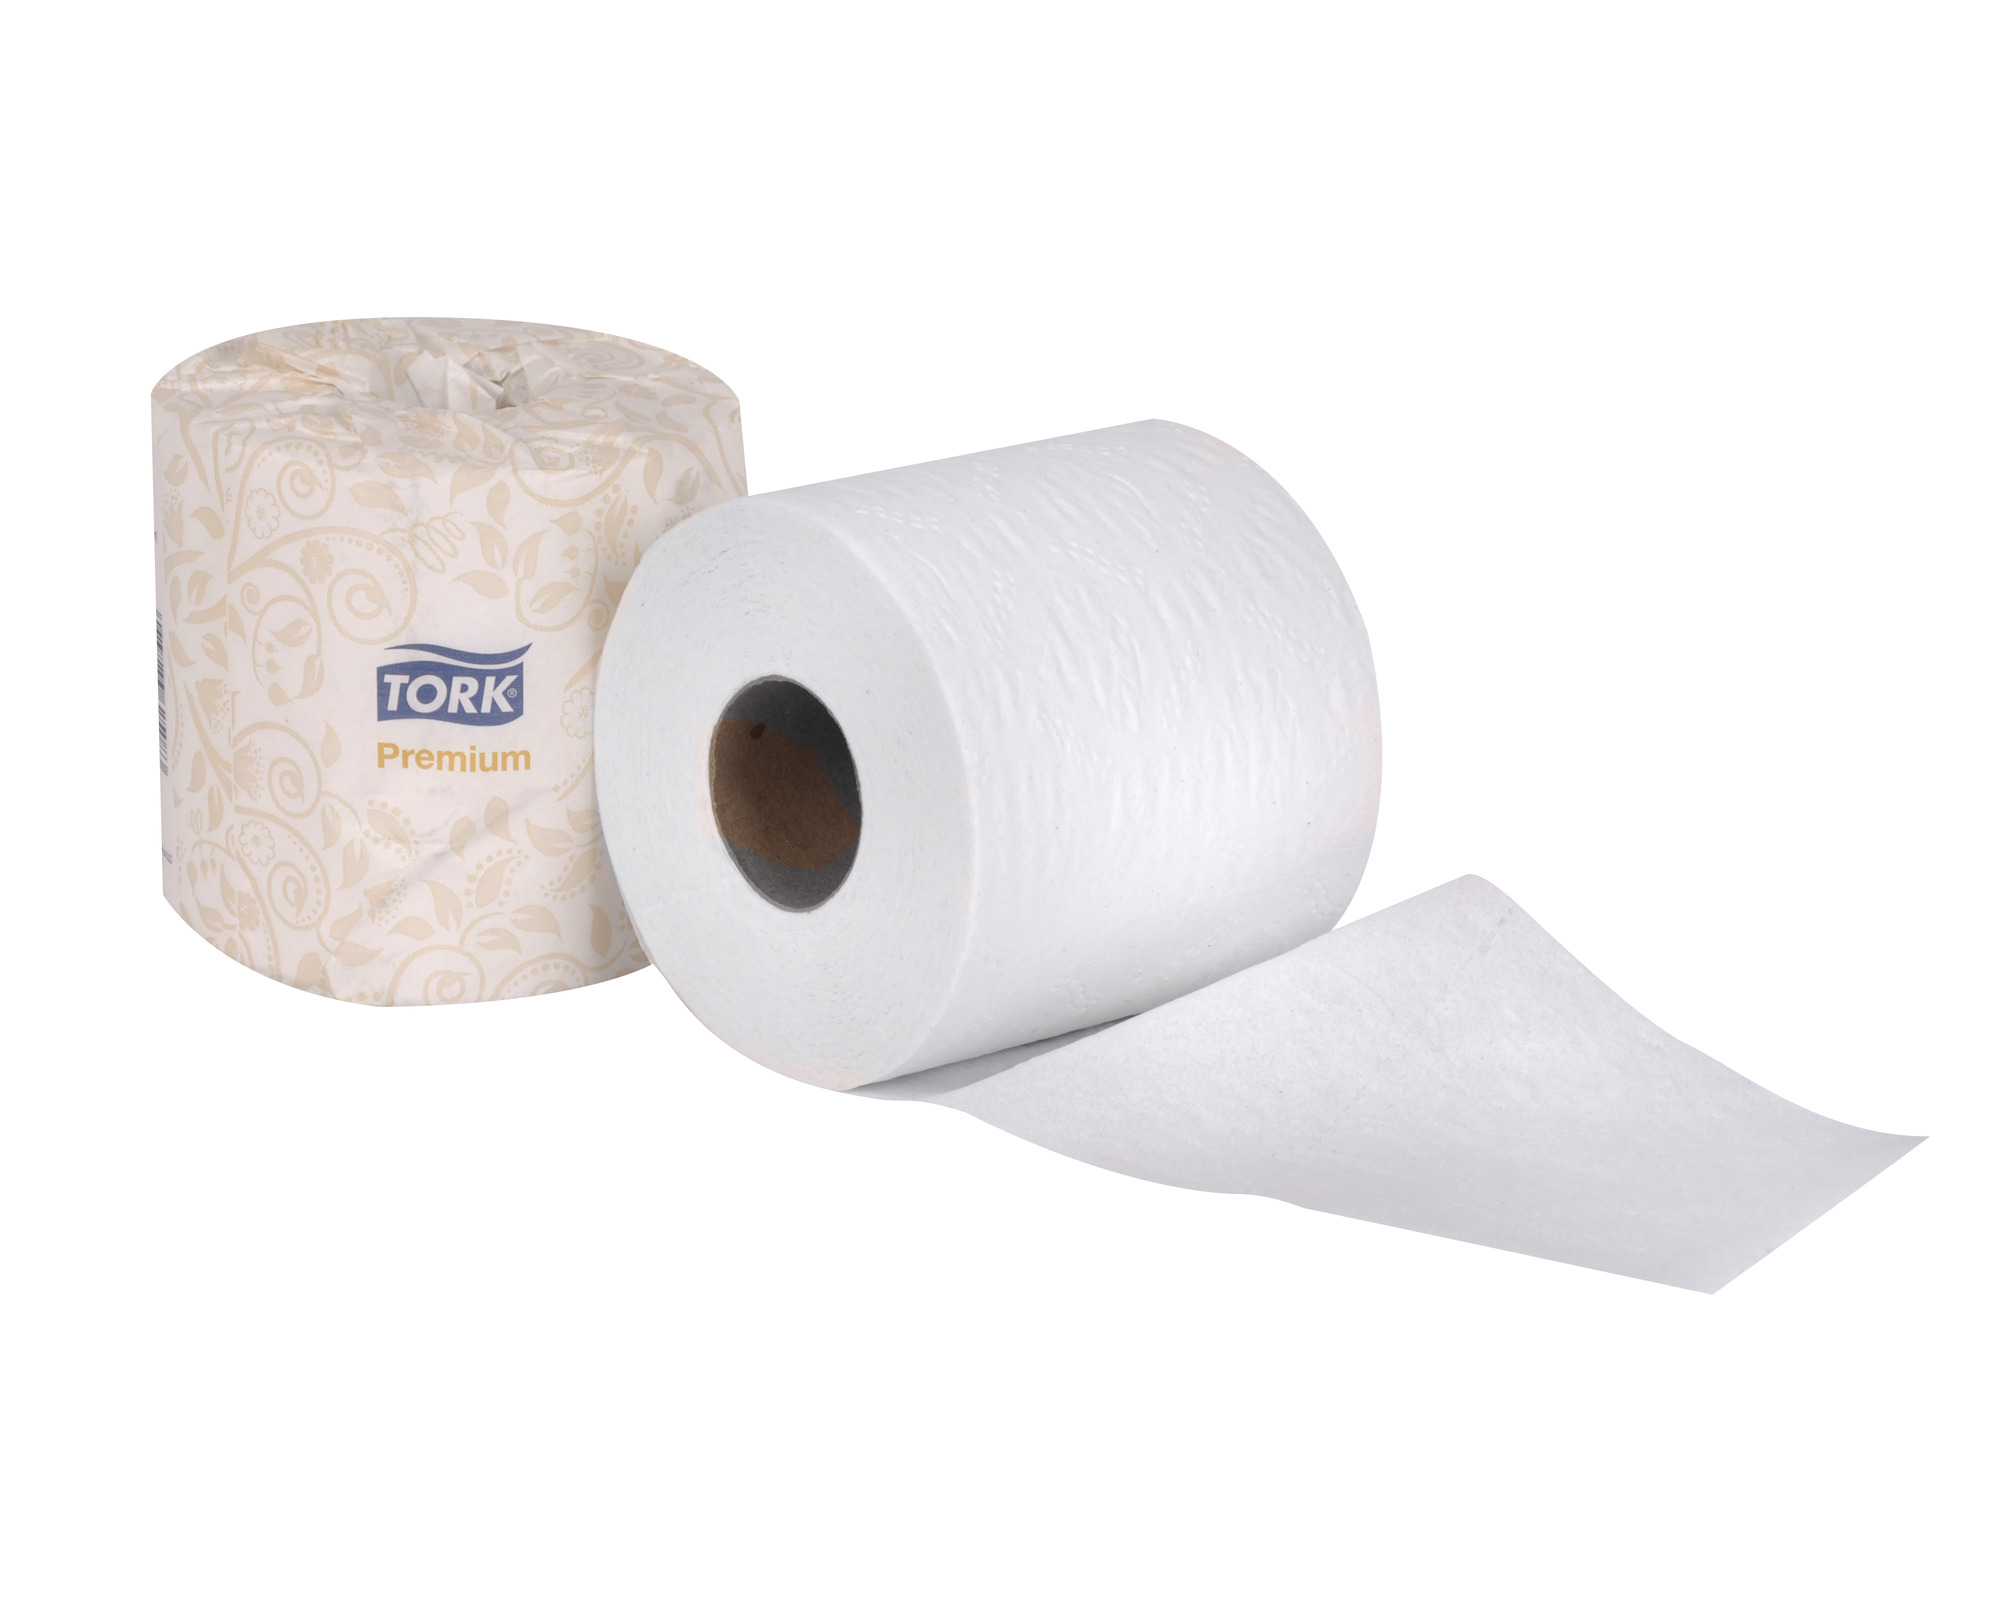 Tork Premium Soft Bath Tissue Roll